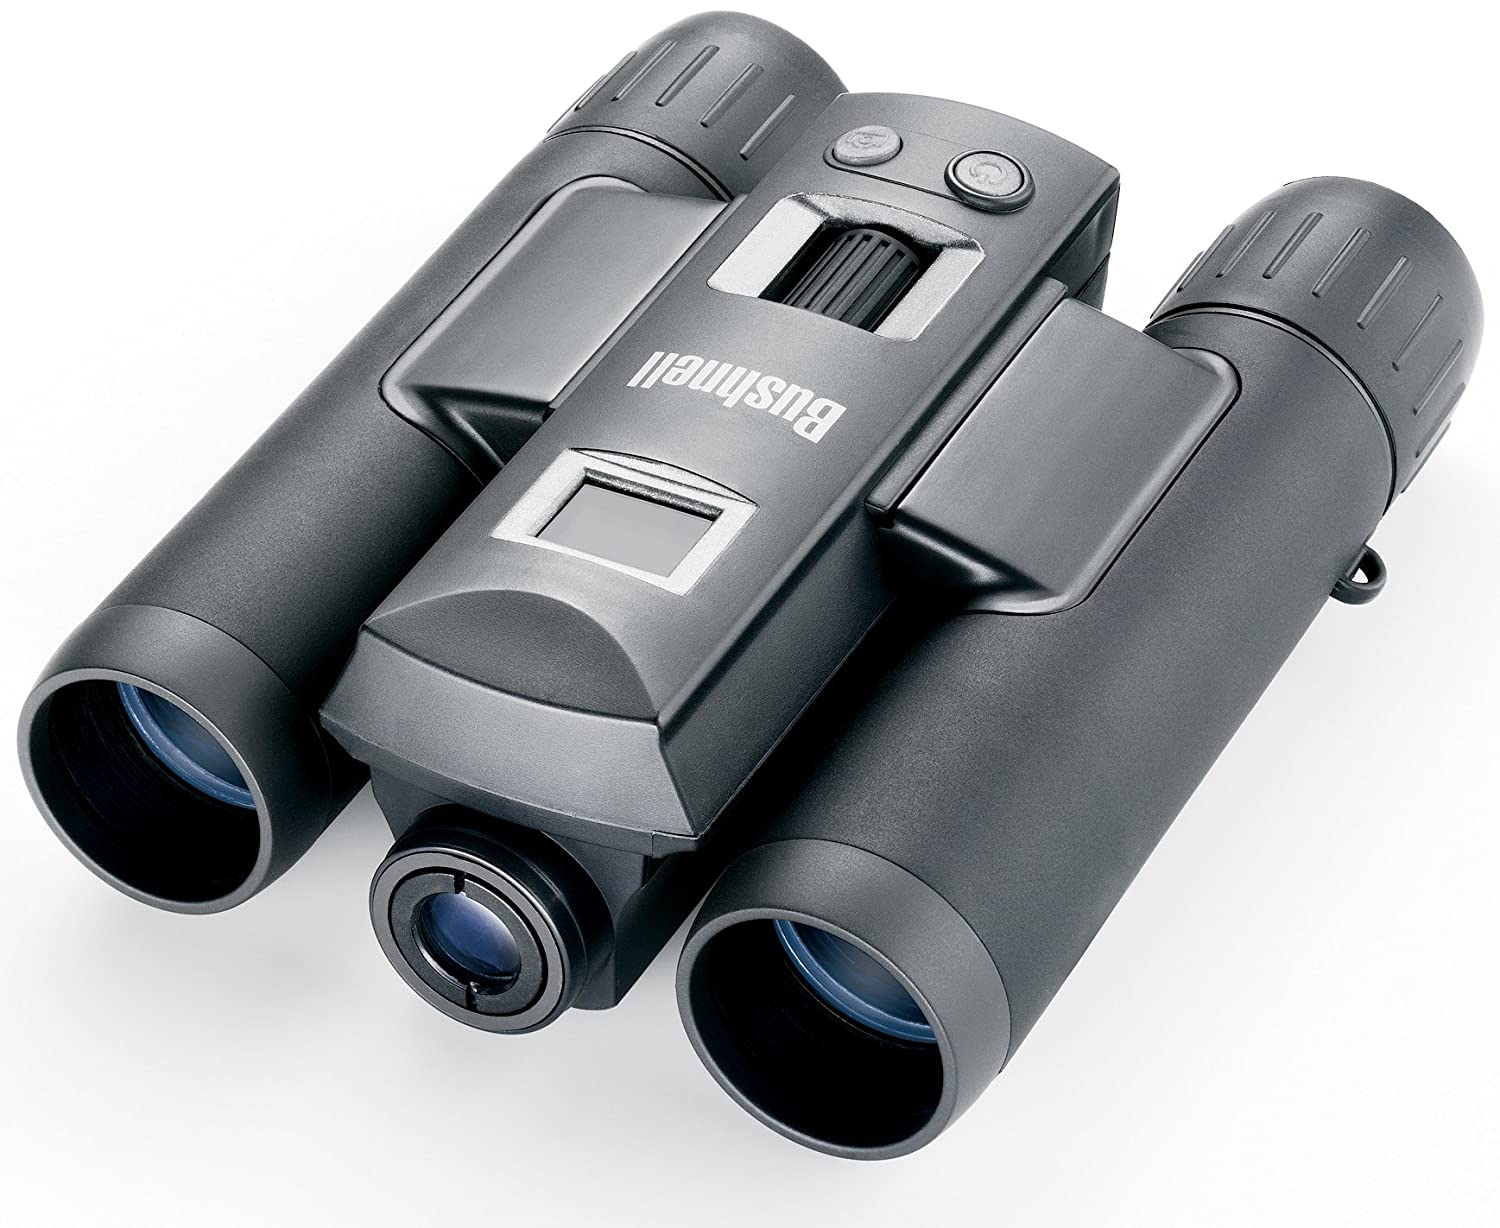 Amazon.com: Bushnell Image View 8x30 Roof Prism Binocular with 2.1MP  Digital Still Camera: Sports & Outdoors